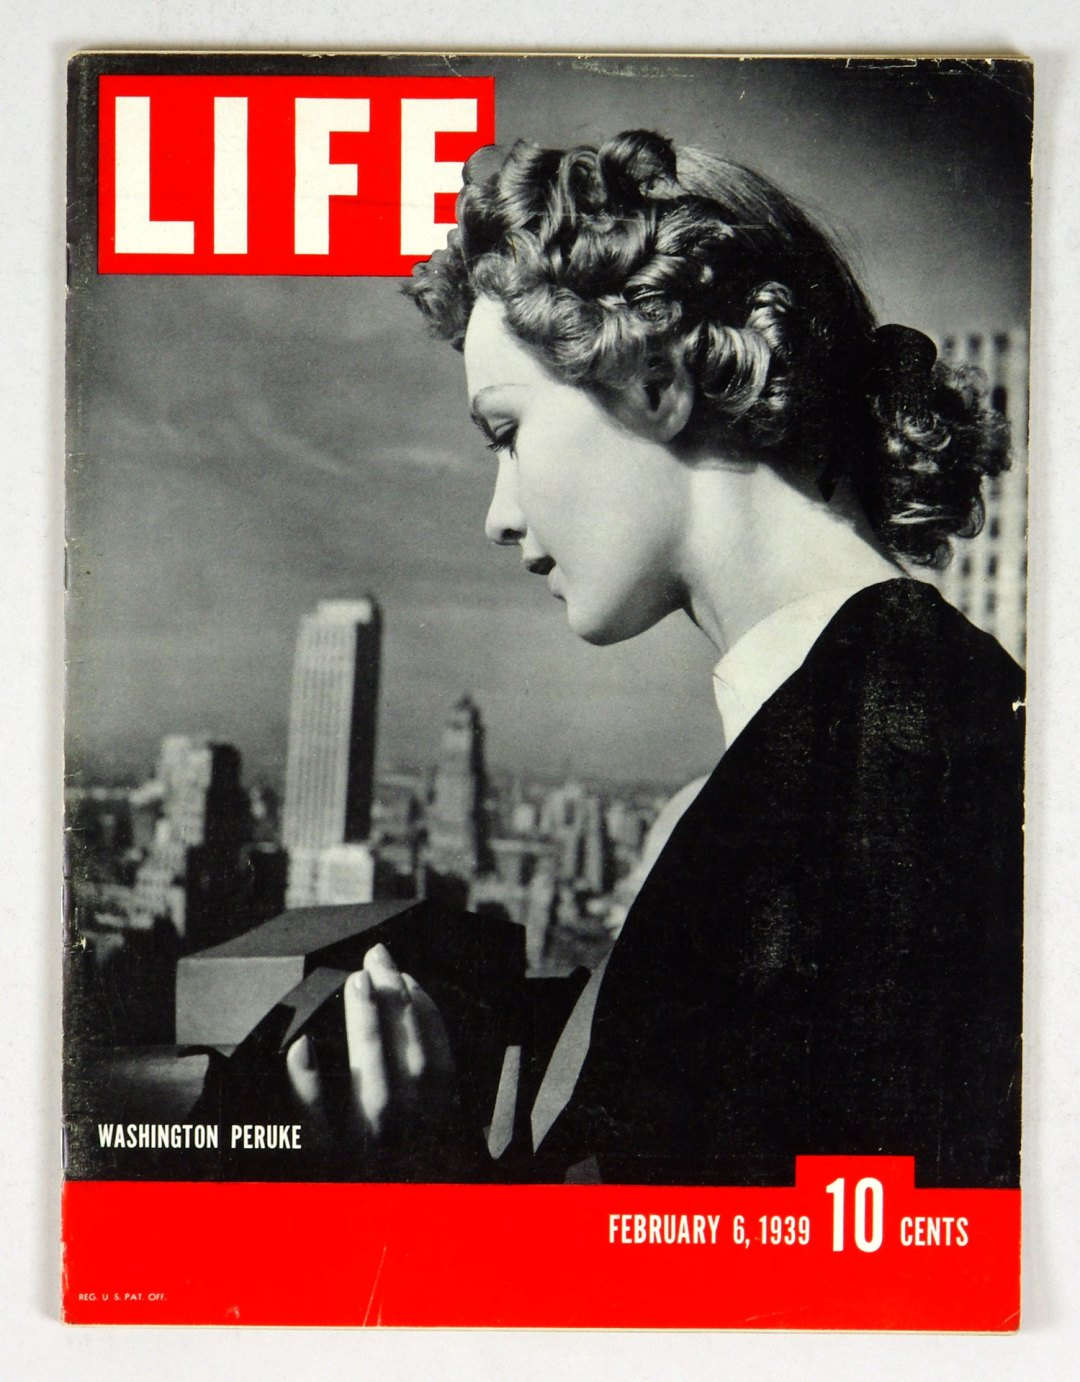 LIFE Magazine 1939 February 6 Washington Peruke